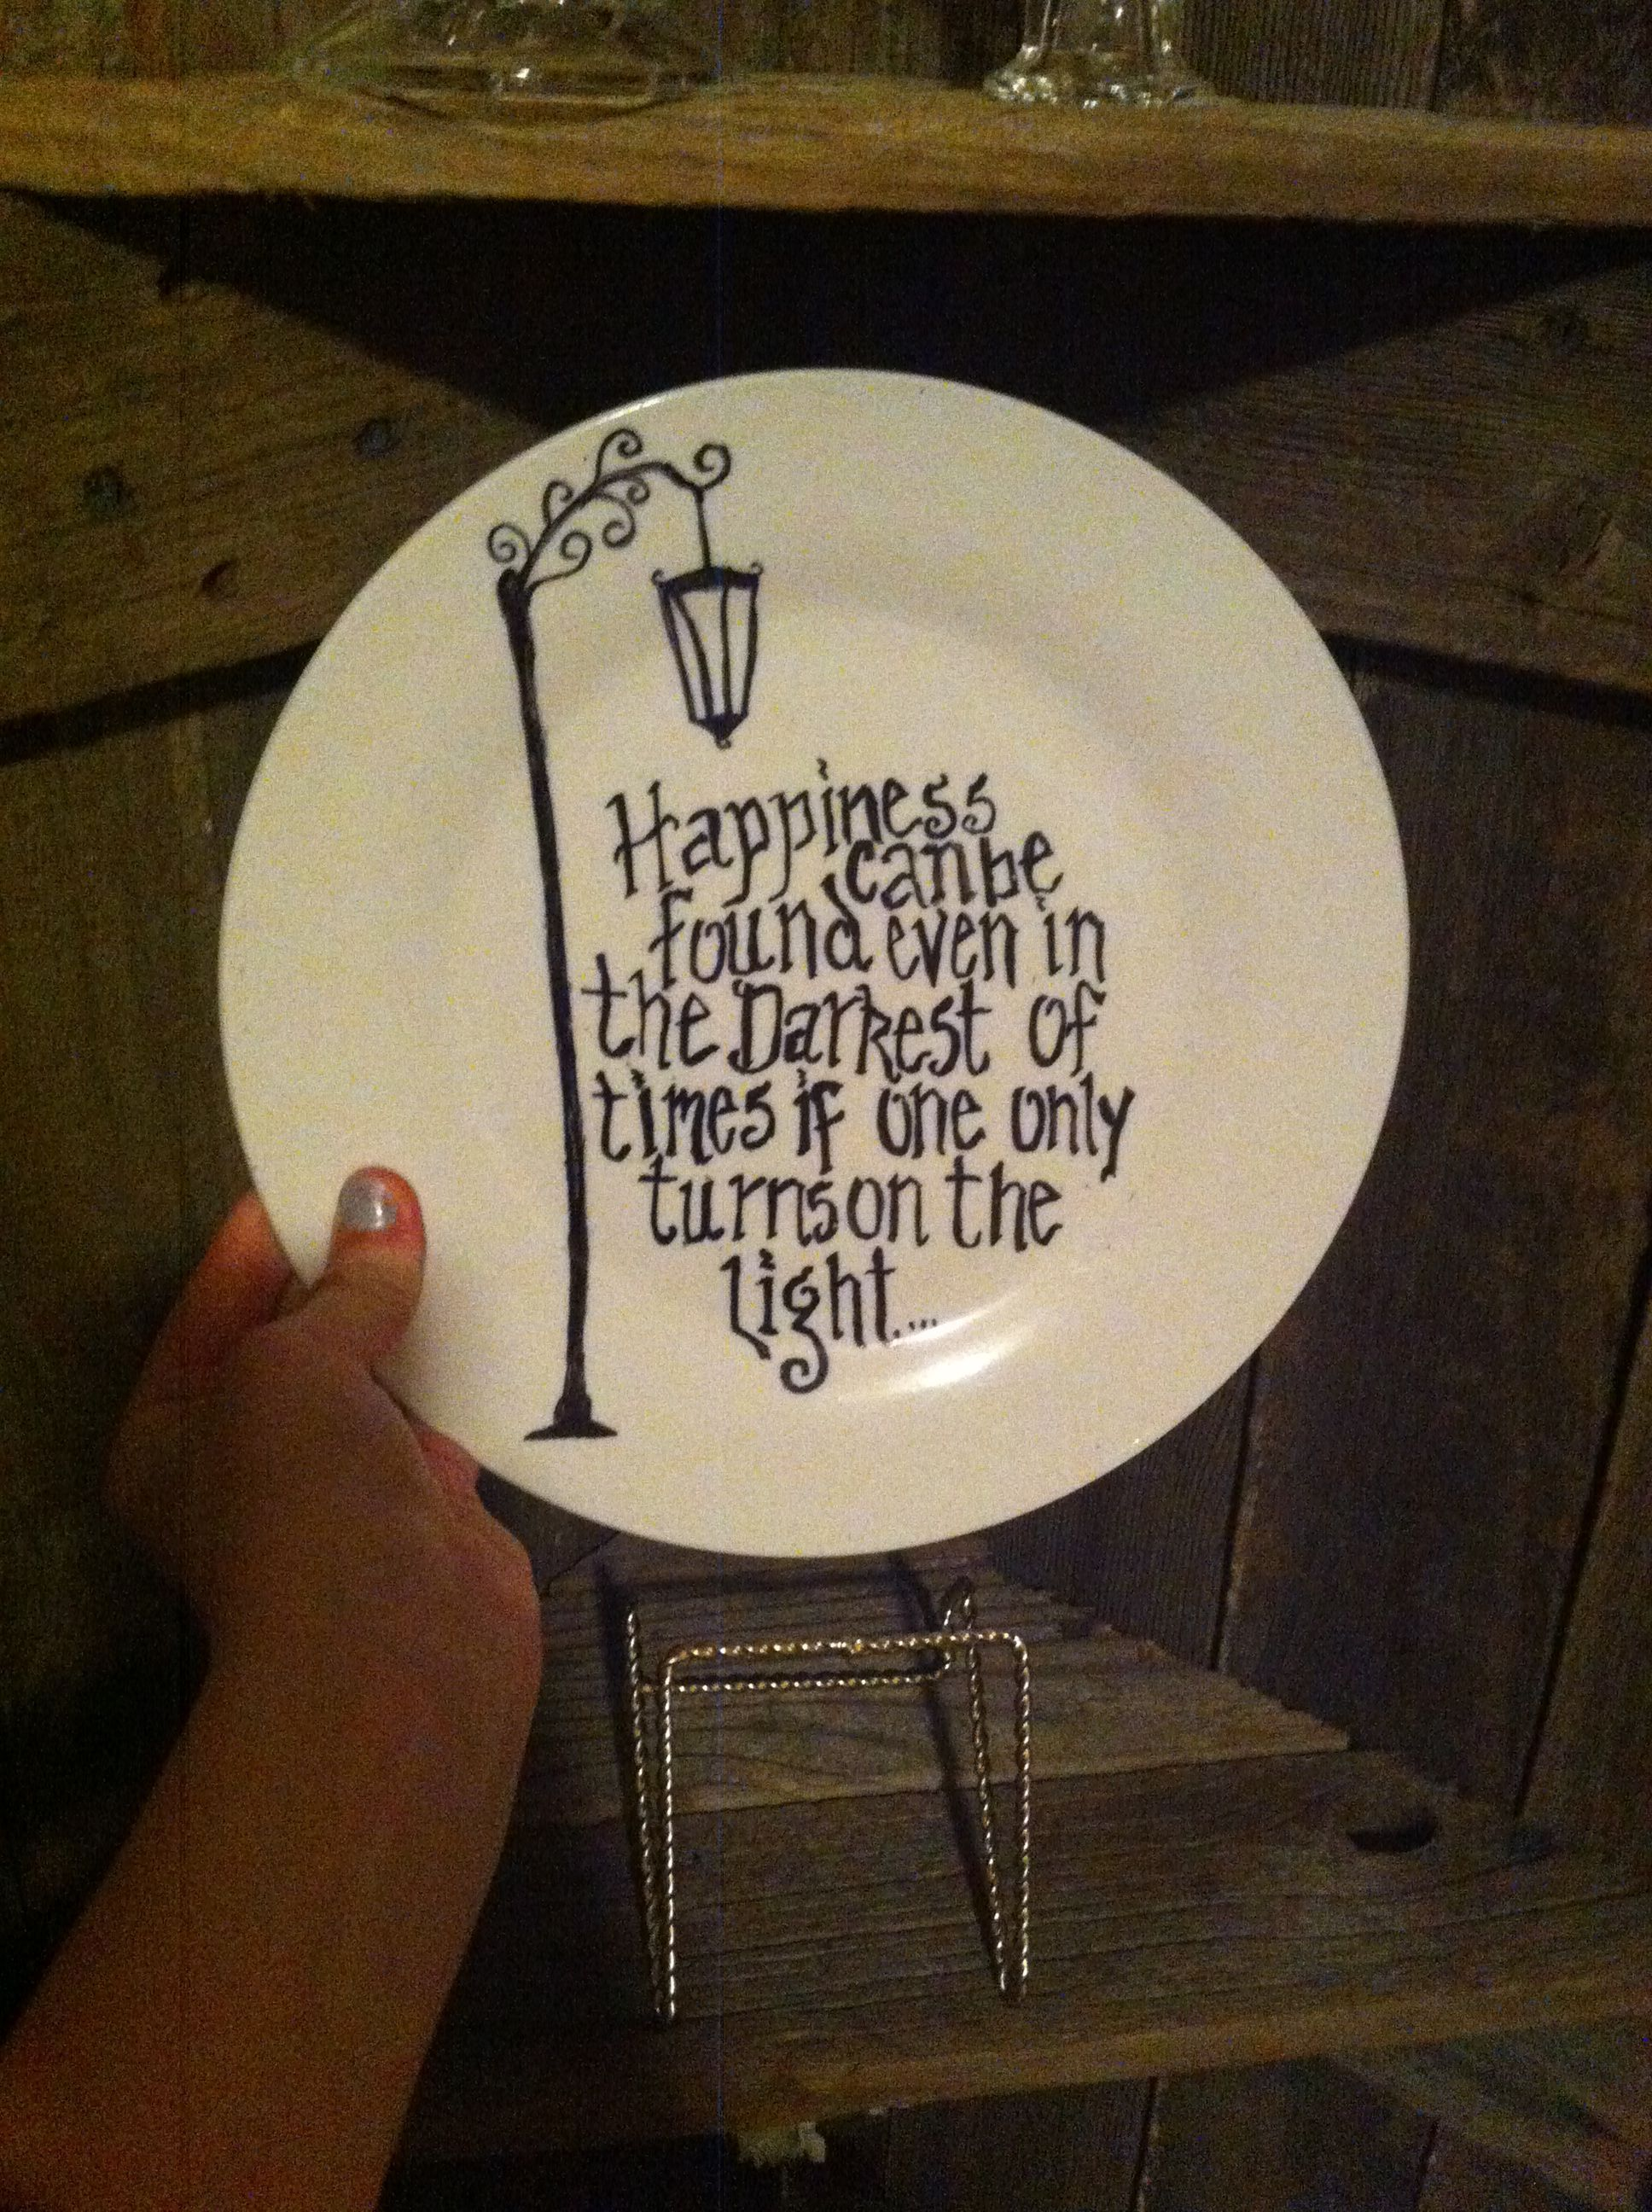 #permanentharry #sharpie #plates #potter #course #quote #bake #oven #make #the #on #in #to #ofSharpie on plates, bake in the oven to make permanent...Harry Potter quote of course(; #sharpieplates #permanentharry #sharpie #plates #potter #course #quote #bake #oven #make #the #on #in #to #ofSharpie on plates, bake in the oven to make permanent...Harry Potter quote of course(; #sharpieplates #permanentharry #sharpie #plates #potter #course #quote #bake #oven #make #the #on #in #to #ofSharpie on pla #sharpieplates